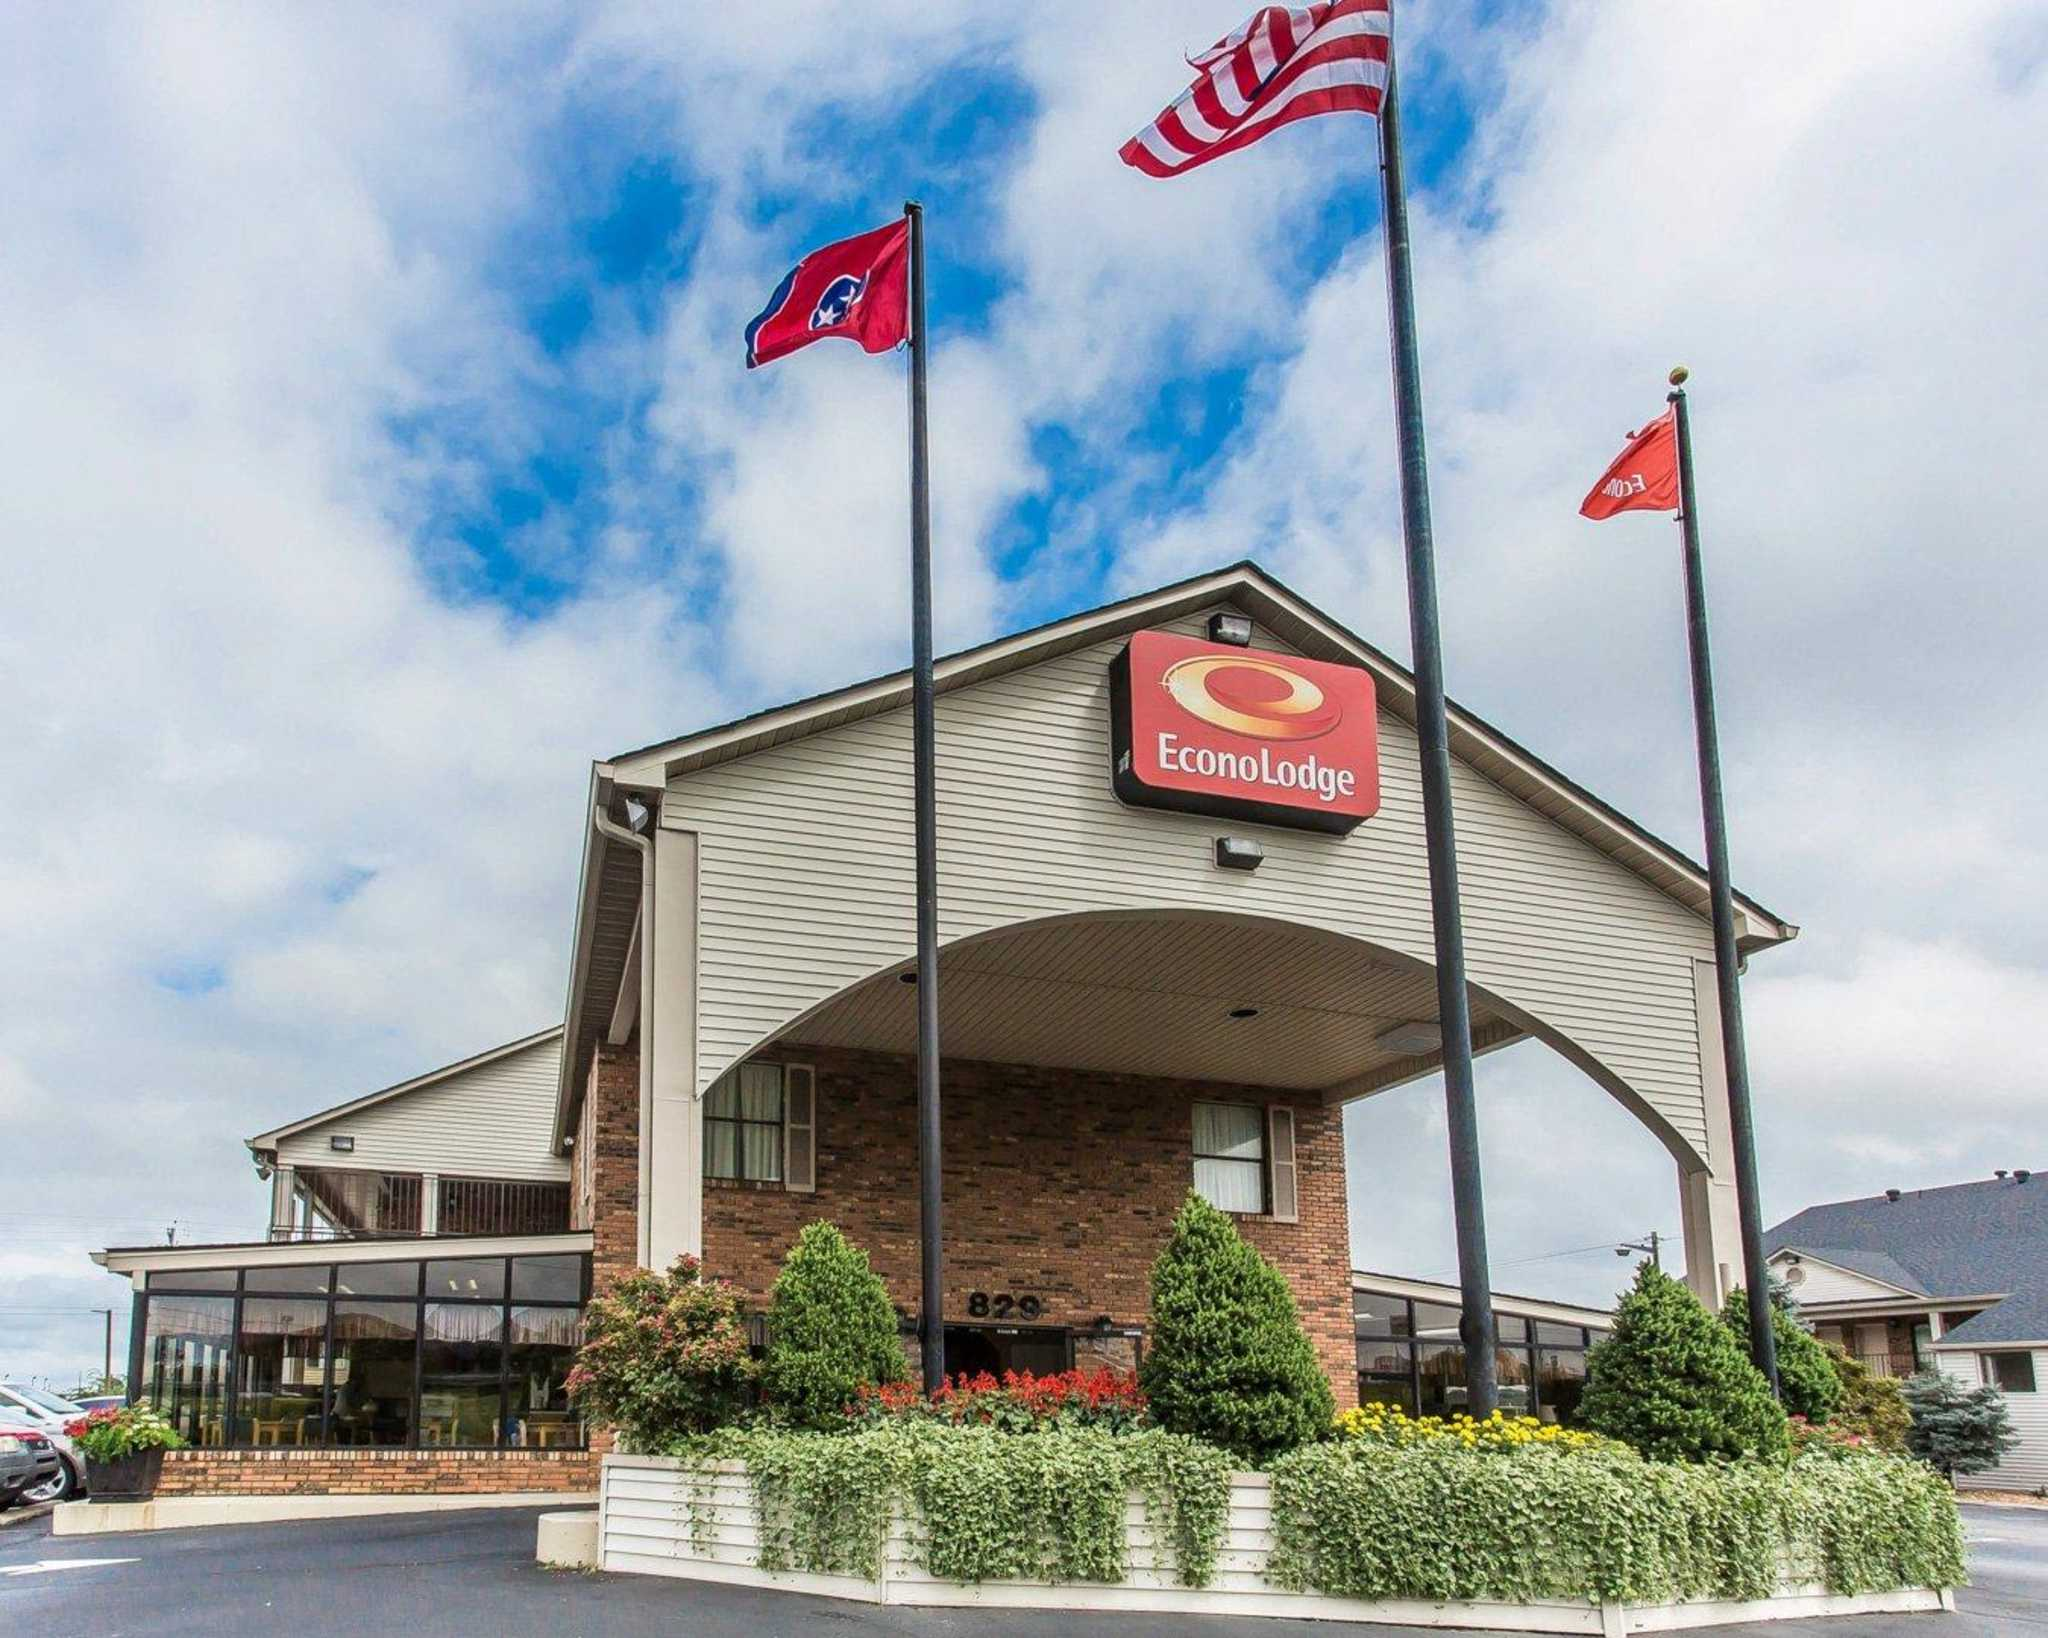 Econo Lodge - Lebanon, TN 37087 - (615)444-1001 | ShowMeLocal.com